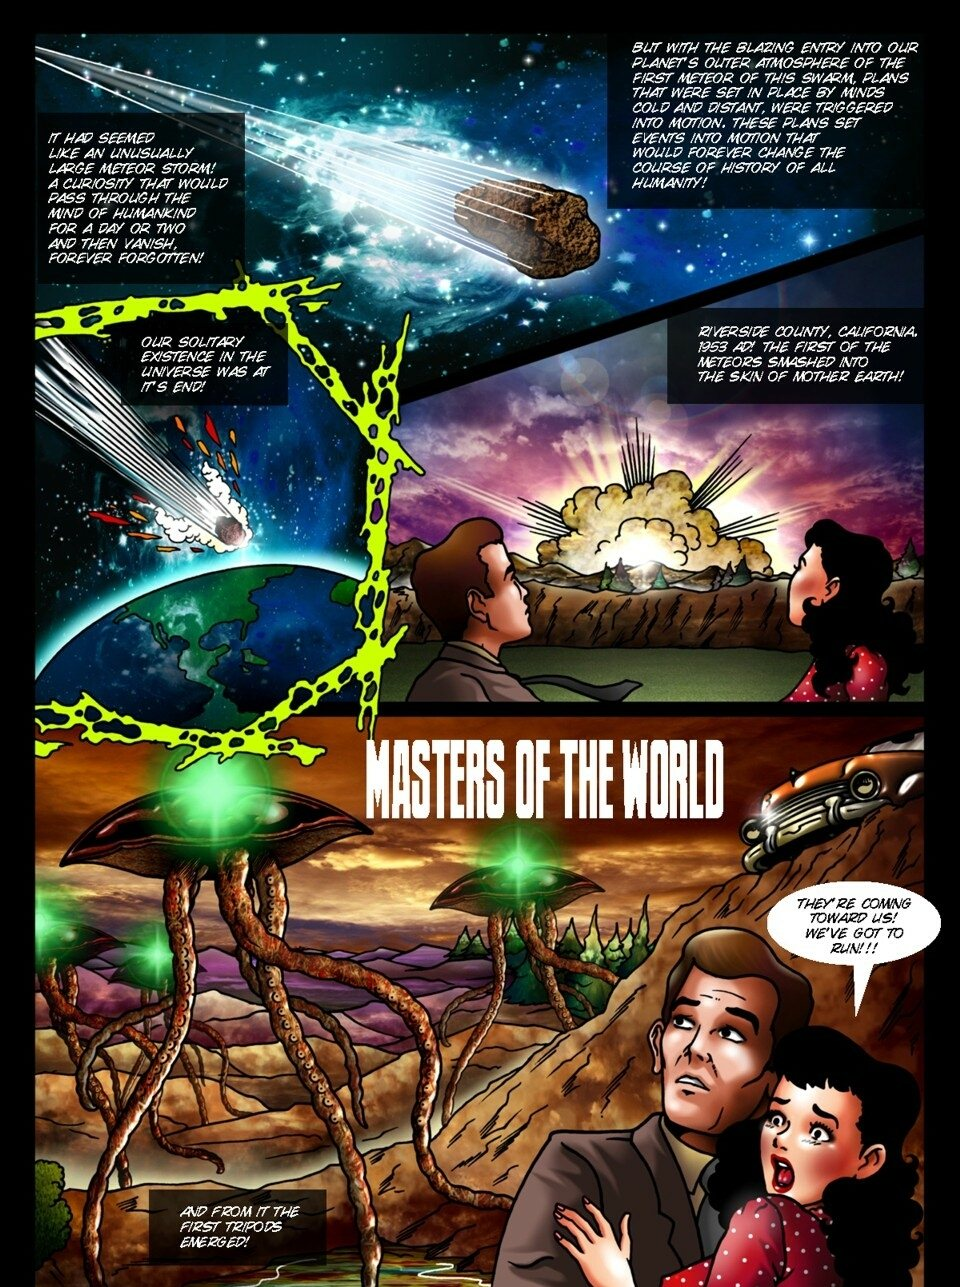 Porn Comics - Masters of the world- Monsterbabe Central porn comics 8 muses